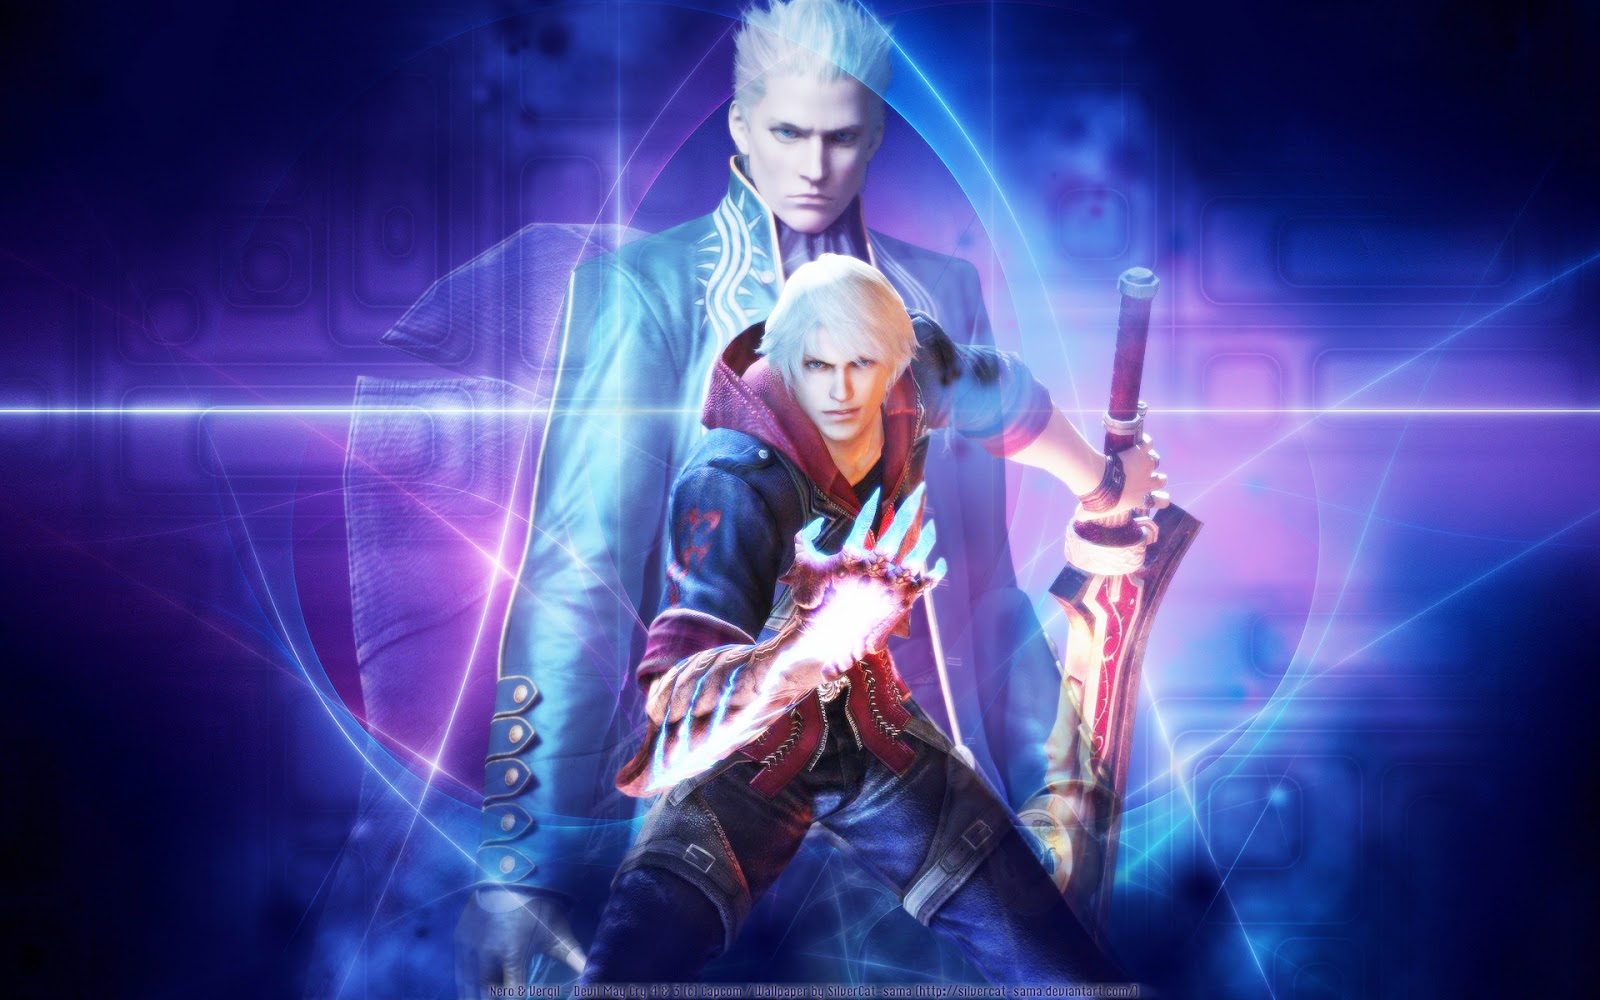 Hideaki Itsuno working On New Game - Possibly Devil May Cry 5